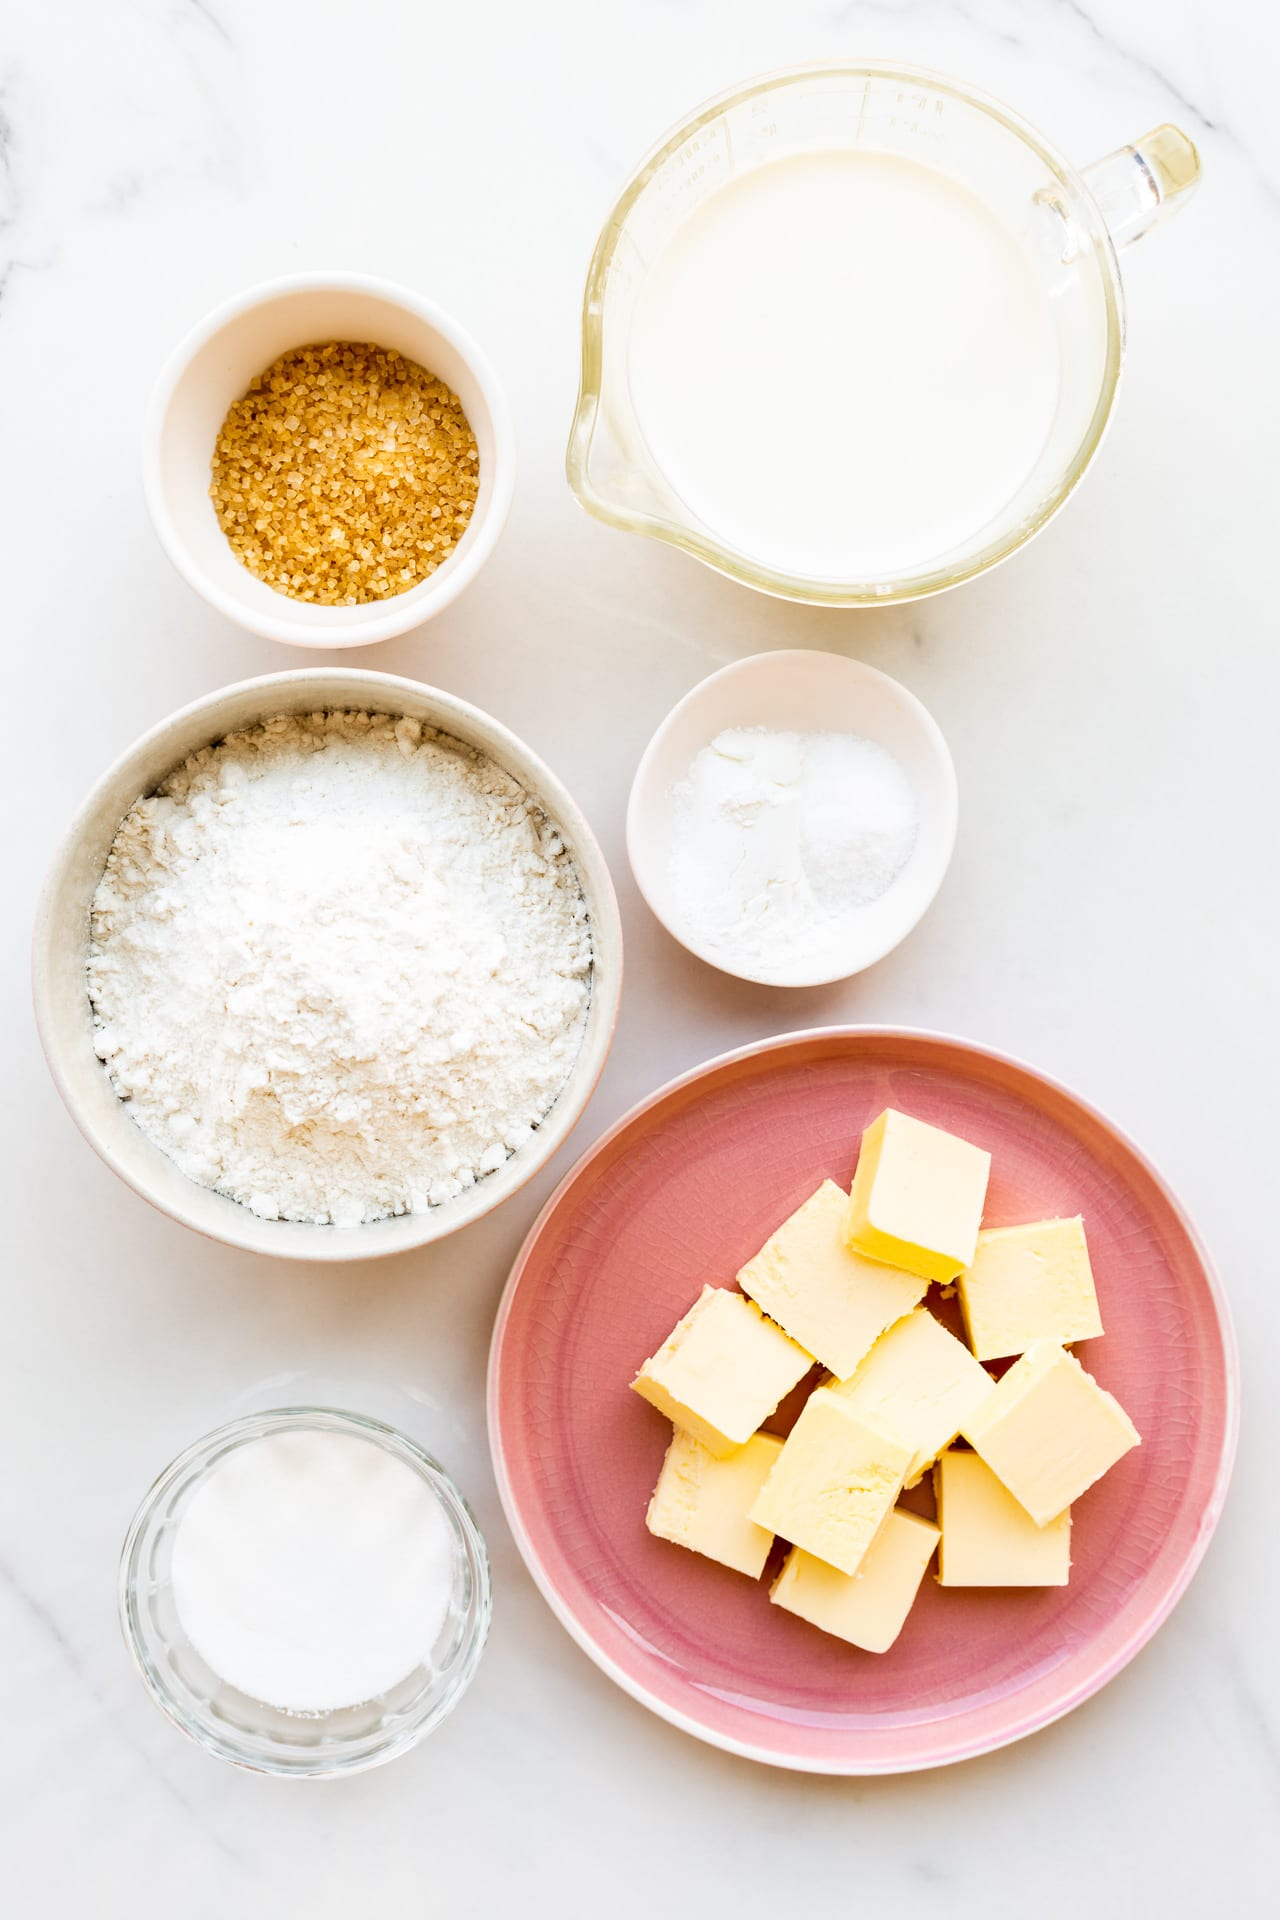 Ingredients for homemade biscuits measured out, including cubes of butter, sugar, salt, baking powder, flour, milk, and a little coarse sugar